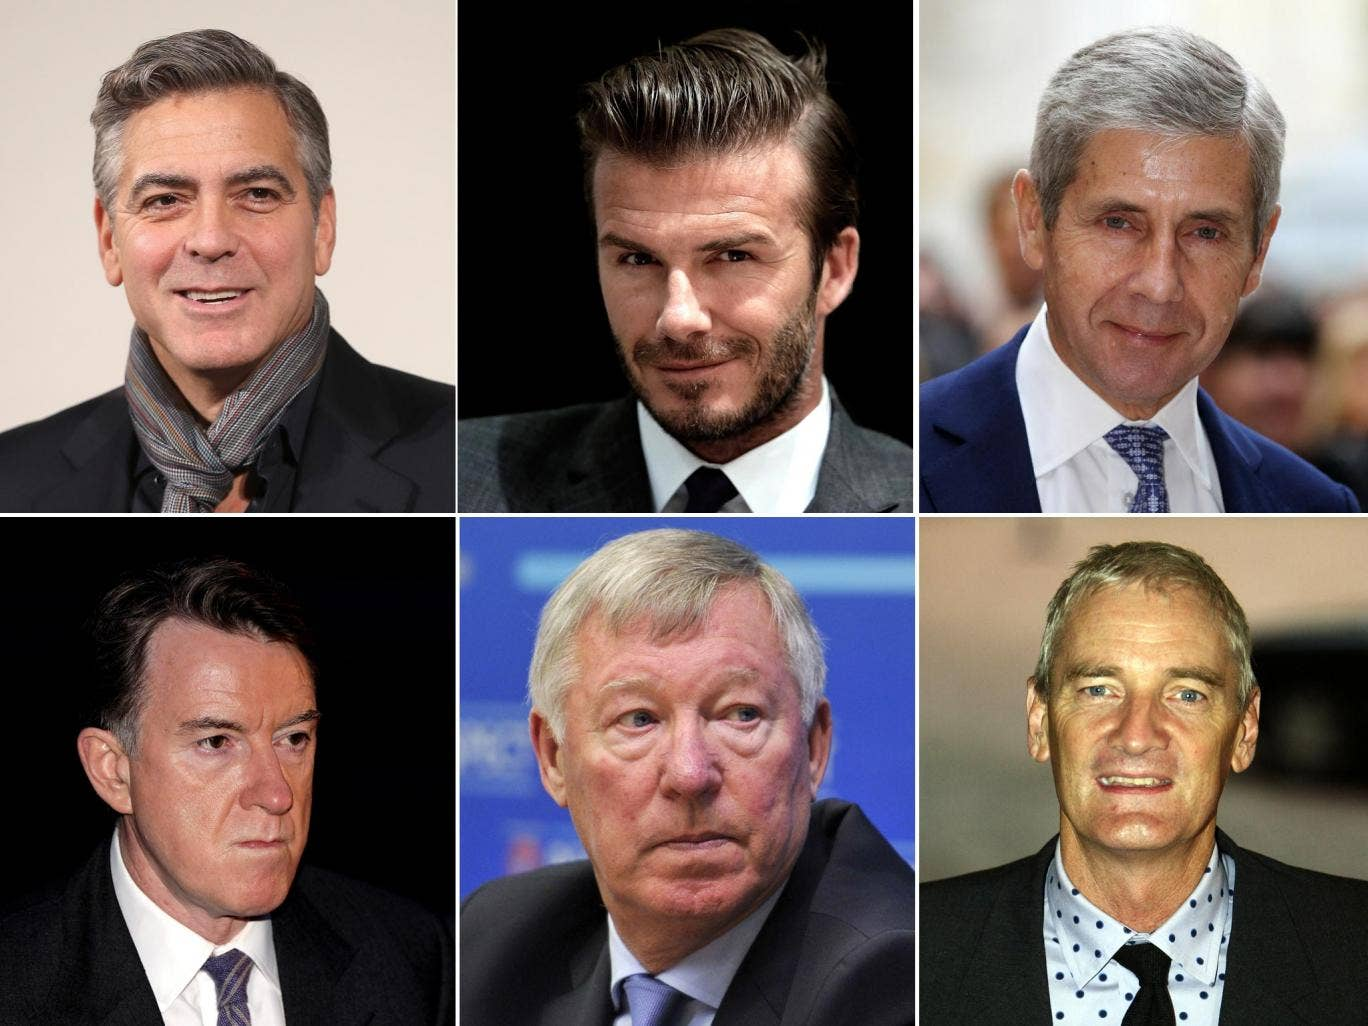 Top row: George Clooney, David Beckham and Sir Stuart Rose are all charming but (bottom row) Peter Mandelson, Alex Ferguson and James Dyson could do with a spell at charm school